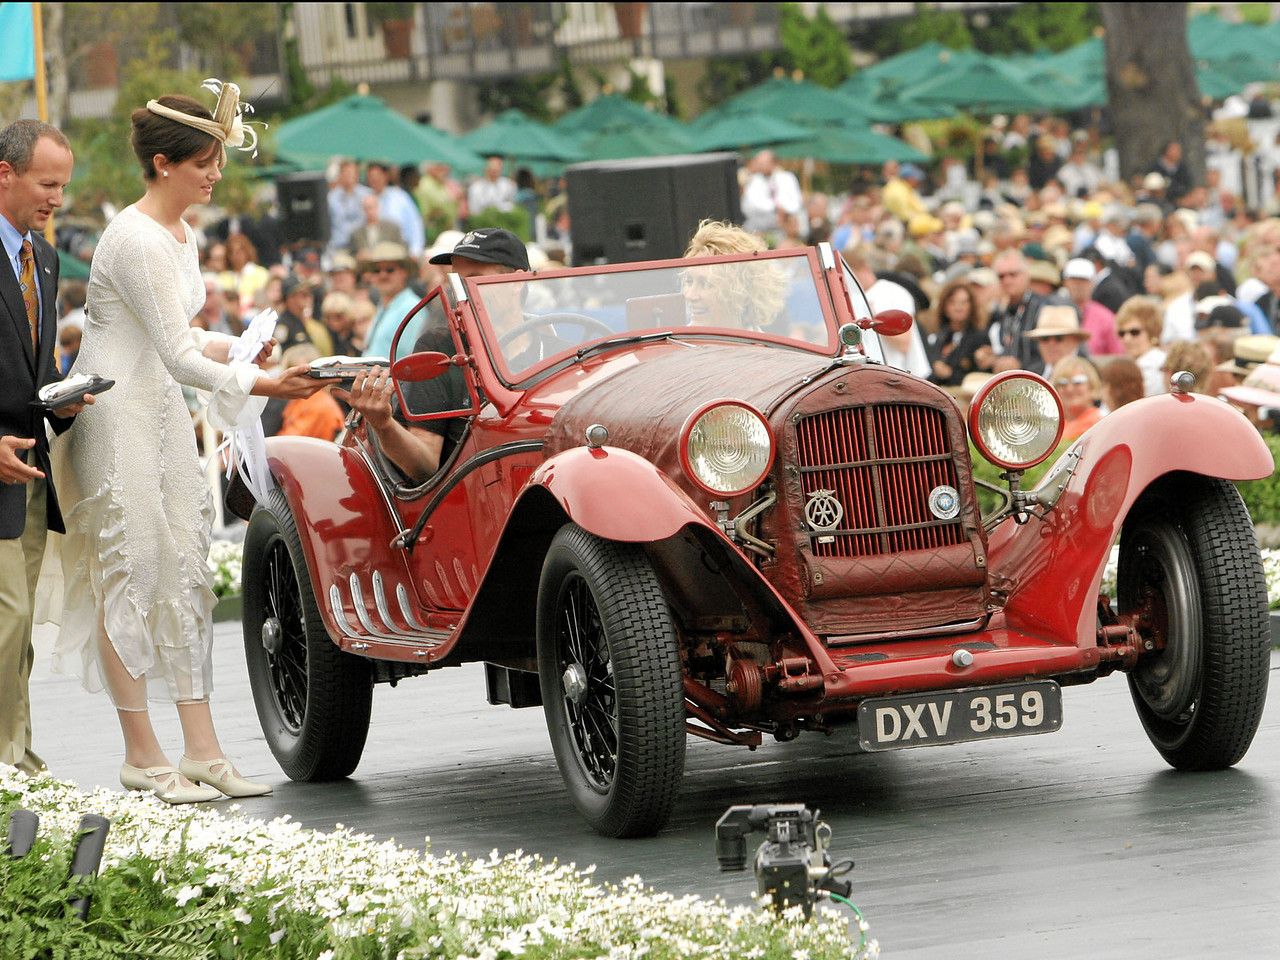 1933 Alfa Romeo 8C 2300 Touring Spyder owned by William Connor, II from Hong Kong 3rd Class L (Prewar Preservation)